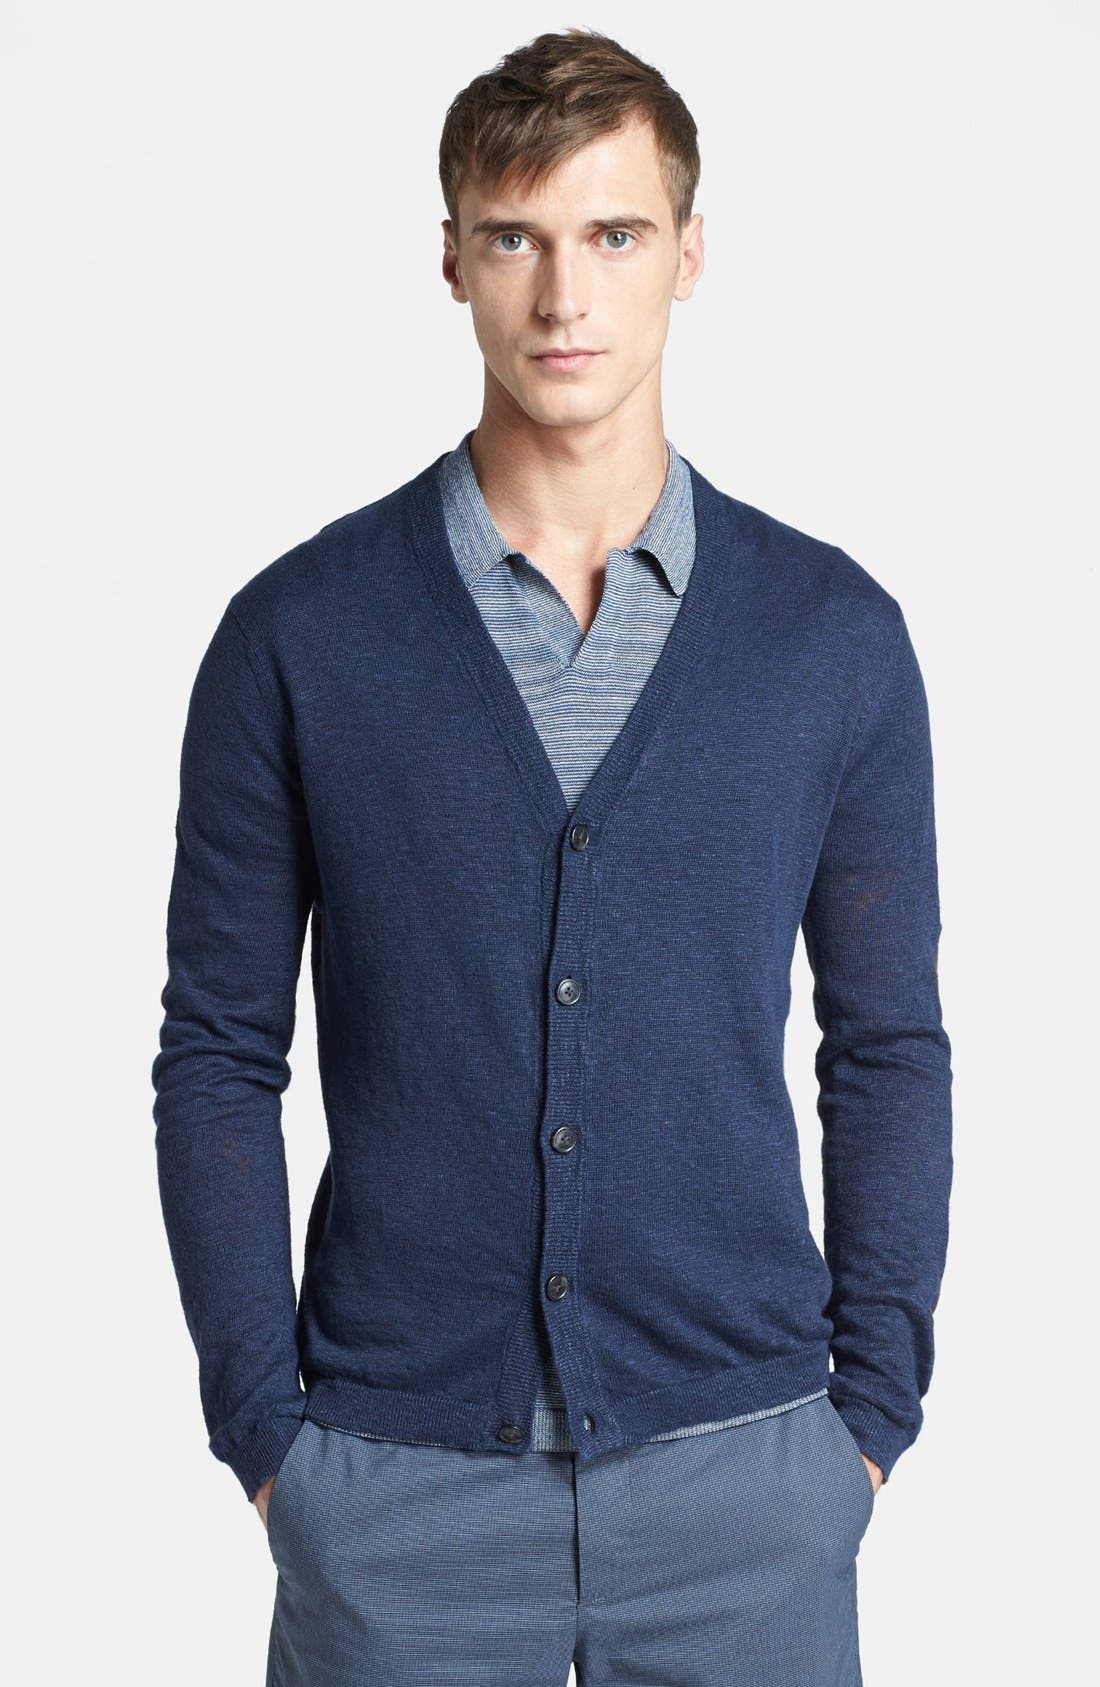 Alternate Image 1 Selected - Theory 'Artur Longitude' Linen Blend Cardigan